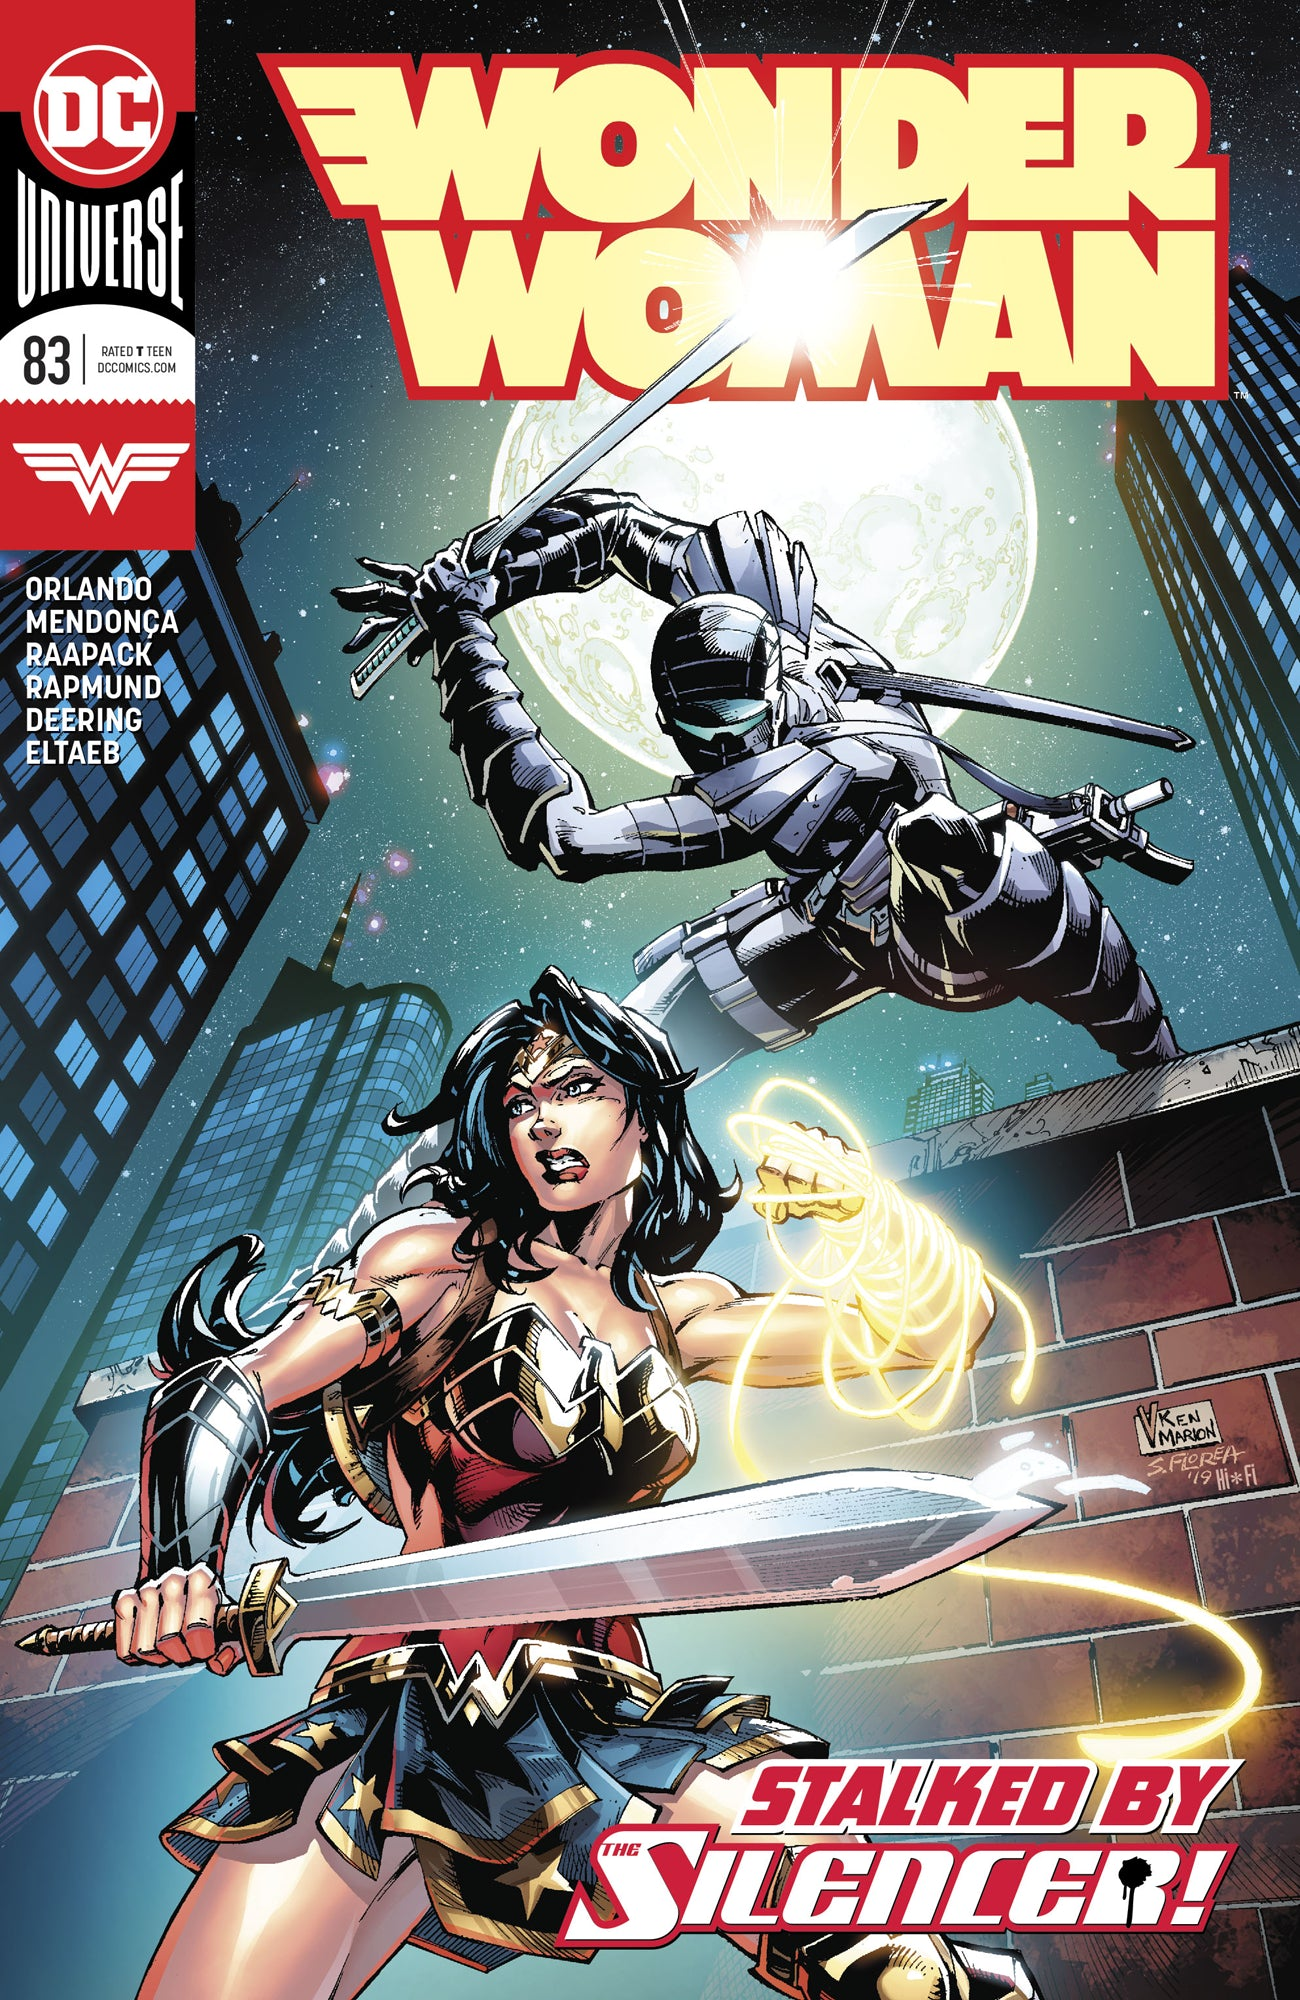 WONDER WOMAN #83 | Game Master's Emporium (The New GME)